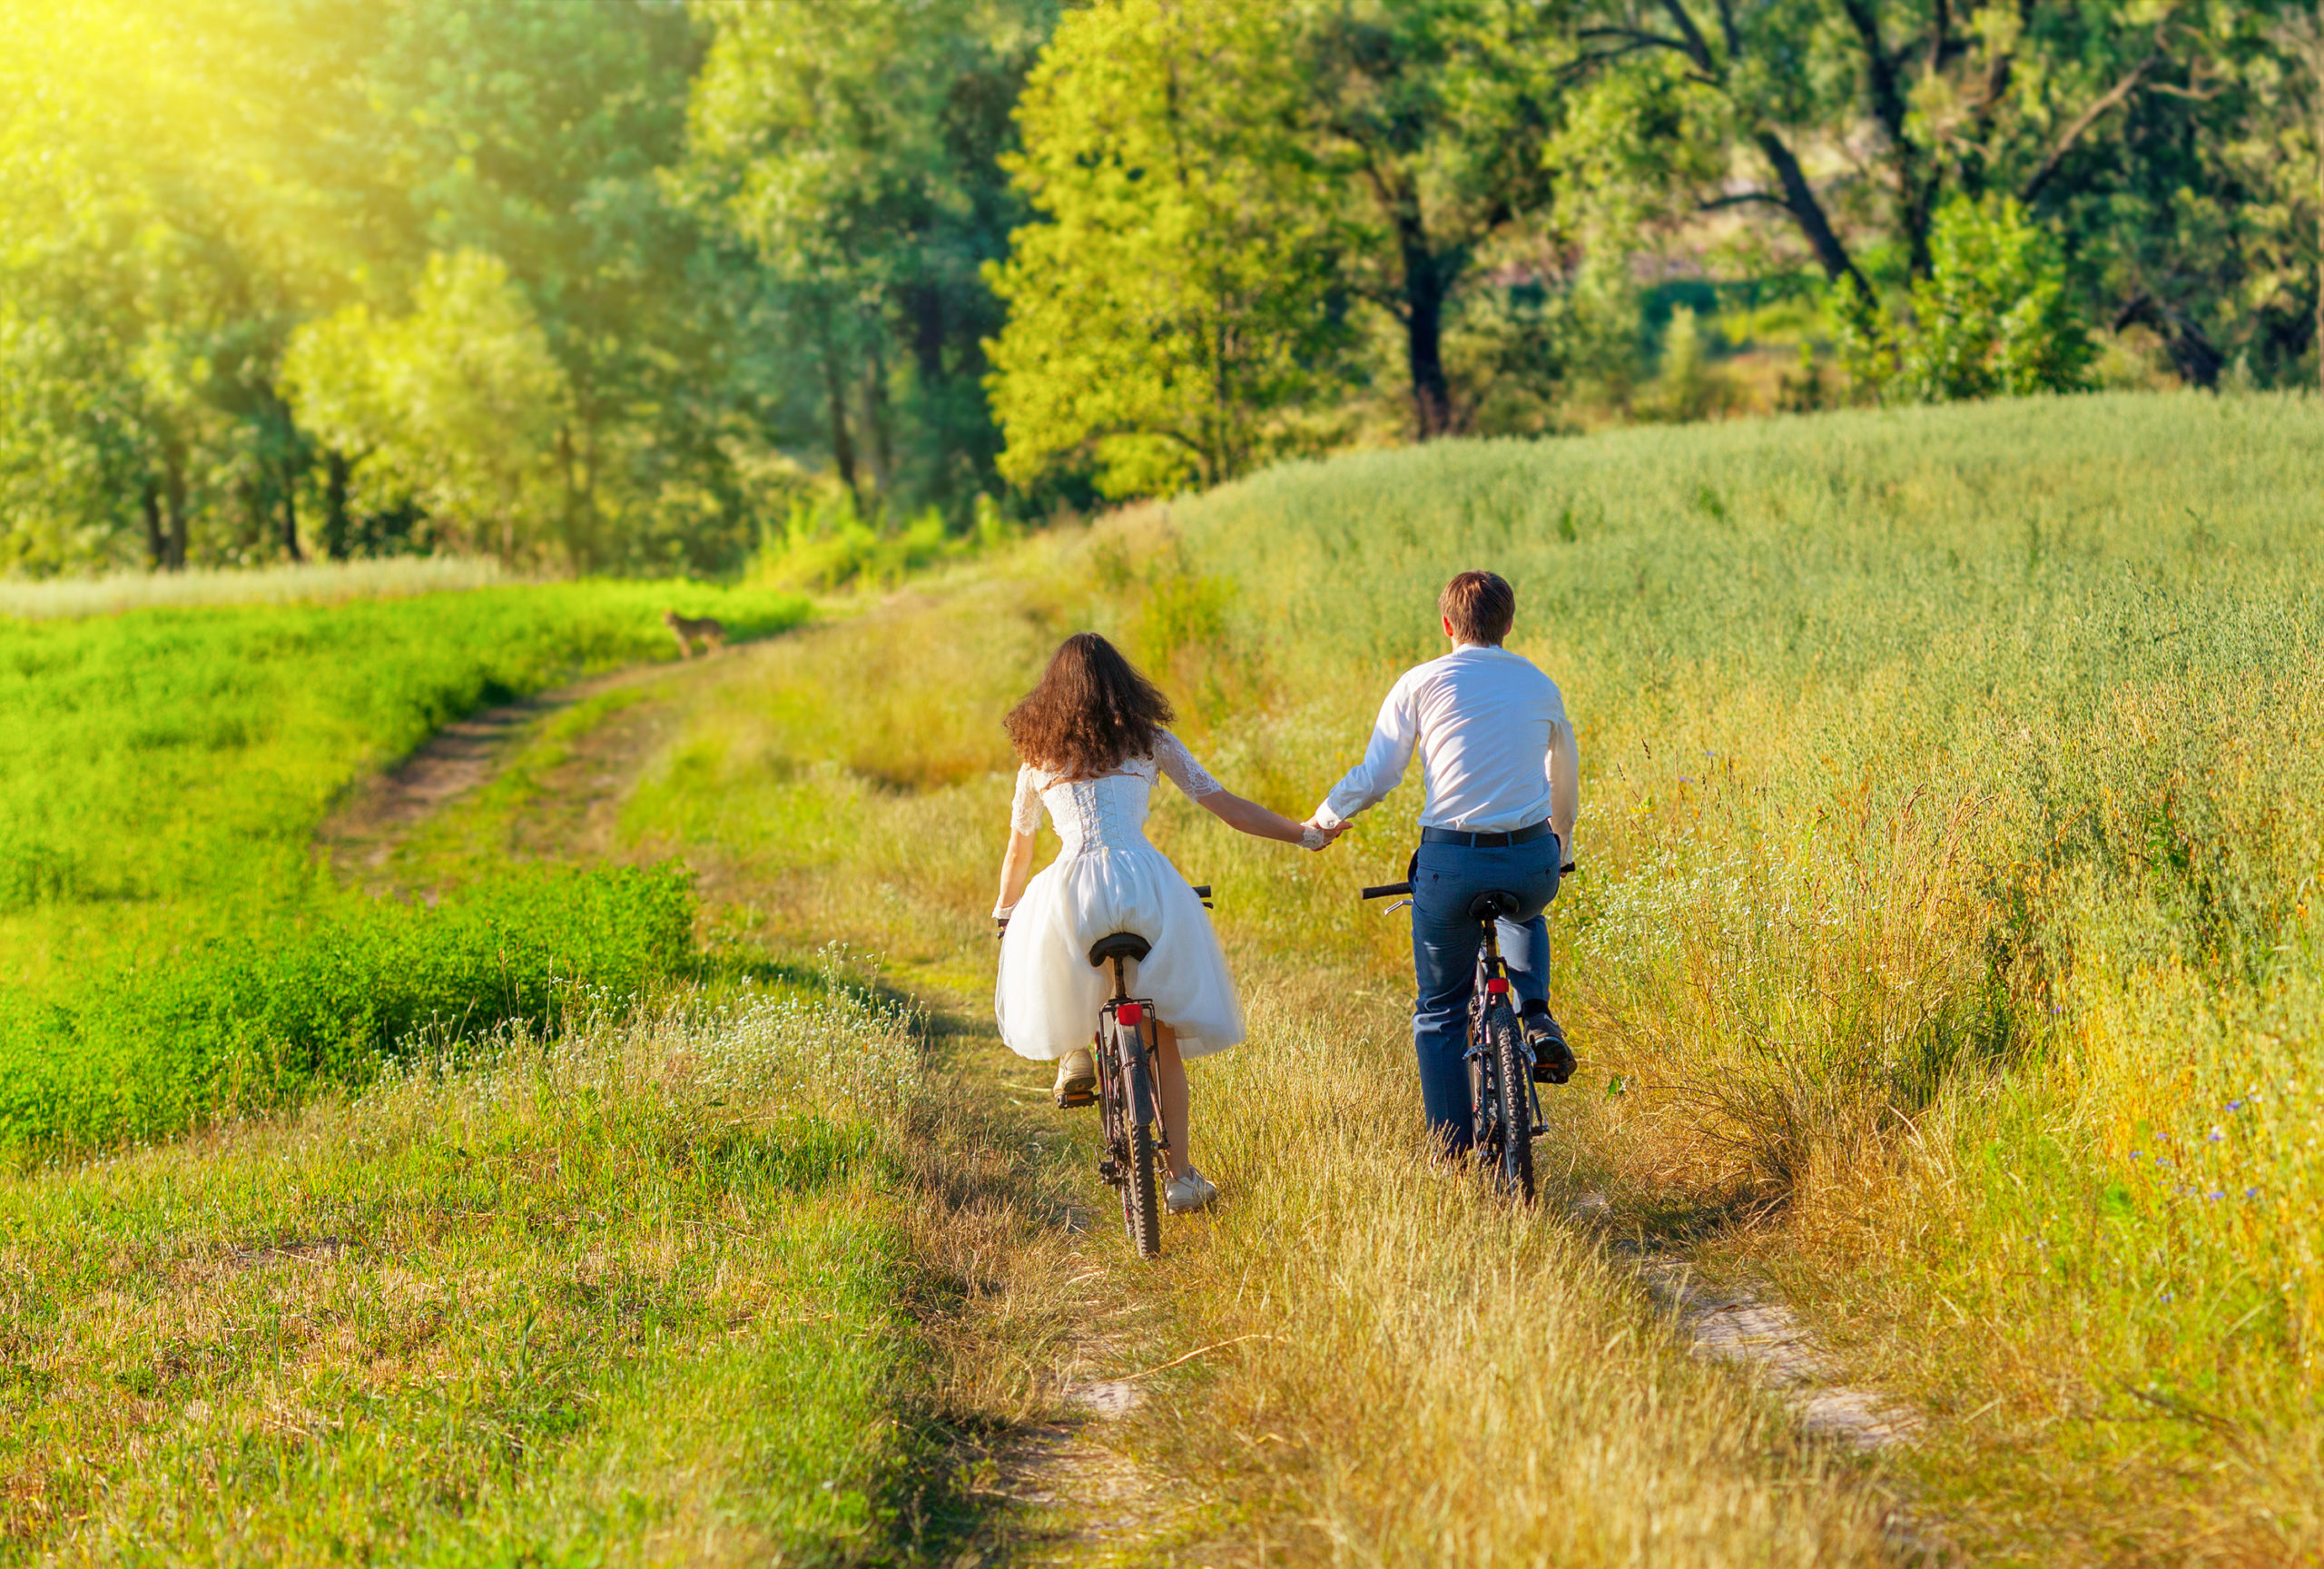 couple in wedding attire heading off in a field on their bikes celebrant led ceremony with the celebrant angel